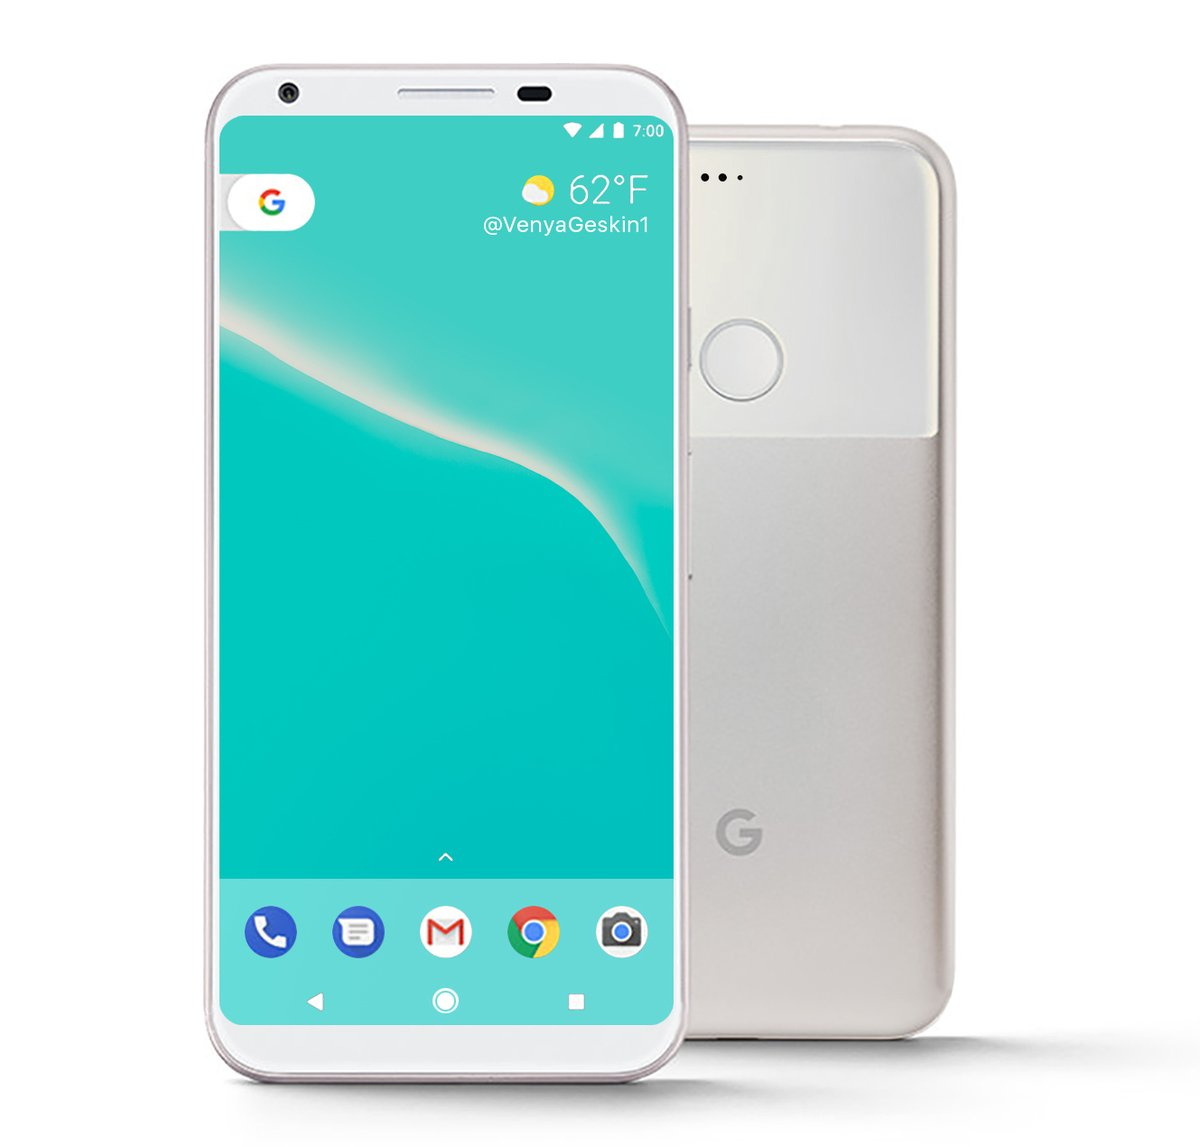 Google Pixel 2 Releasing This Year And Will Be Expensive